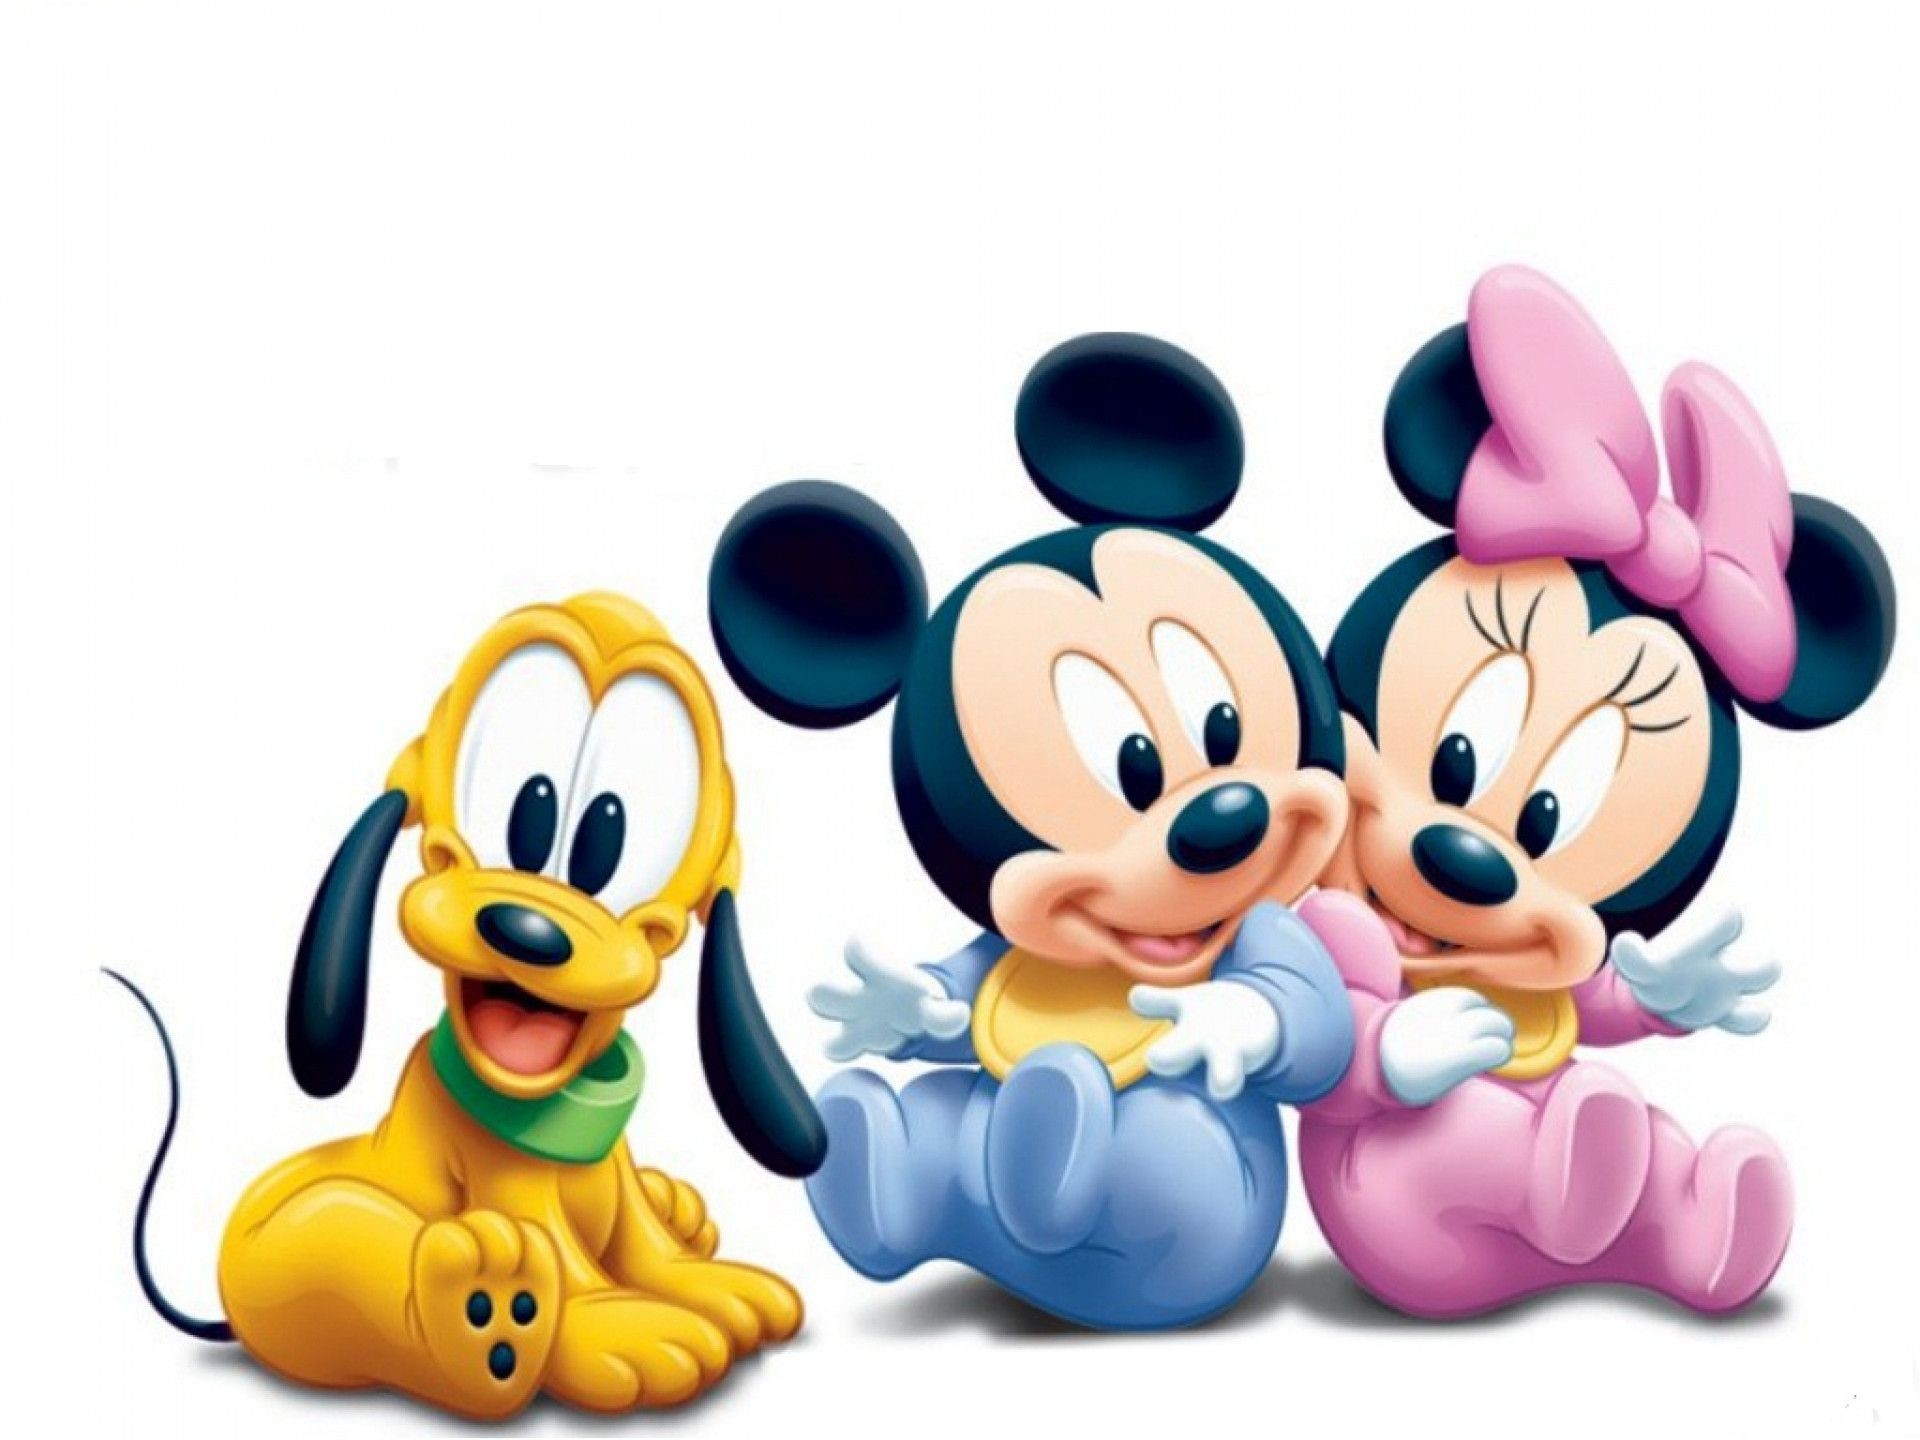 1920x1440 Wallpaper and background photos of mickey, minnie,pluto for fans of Disney  images.